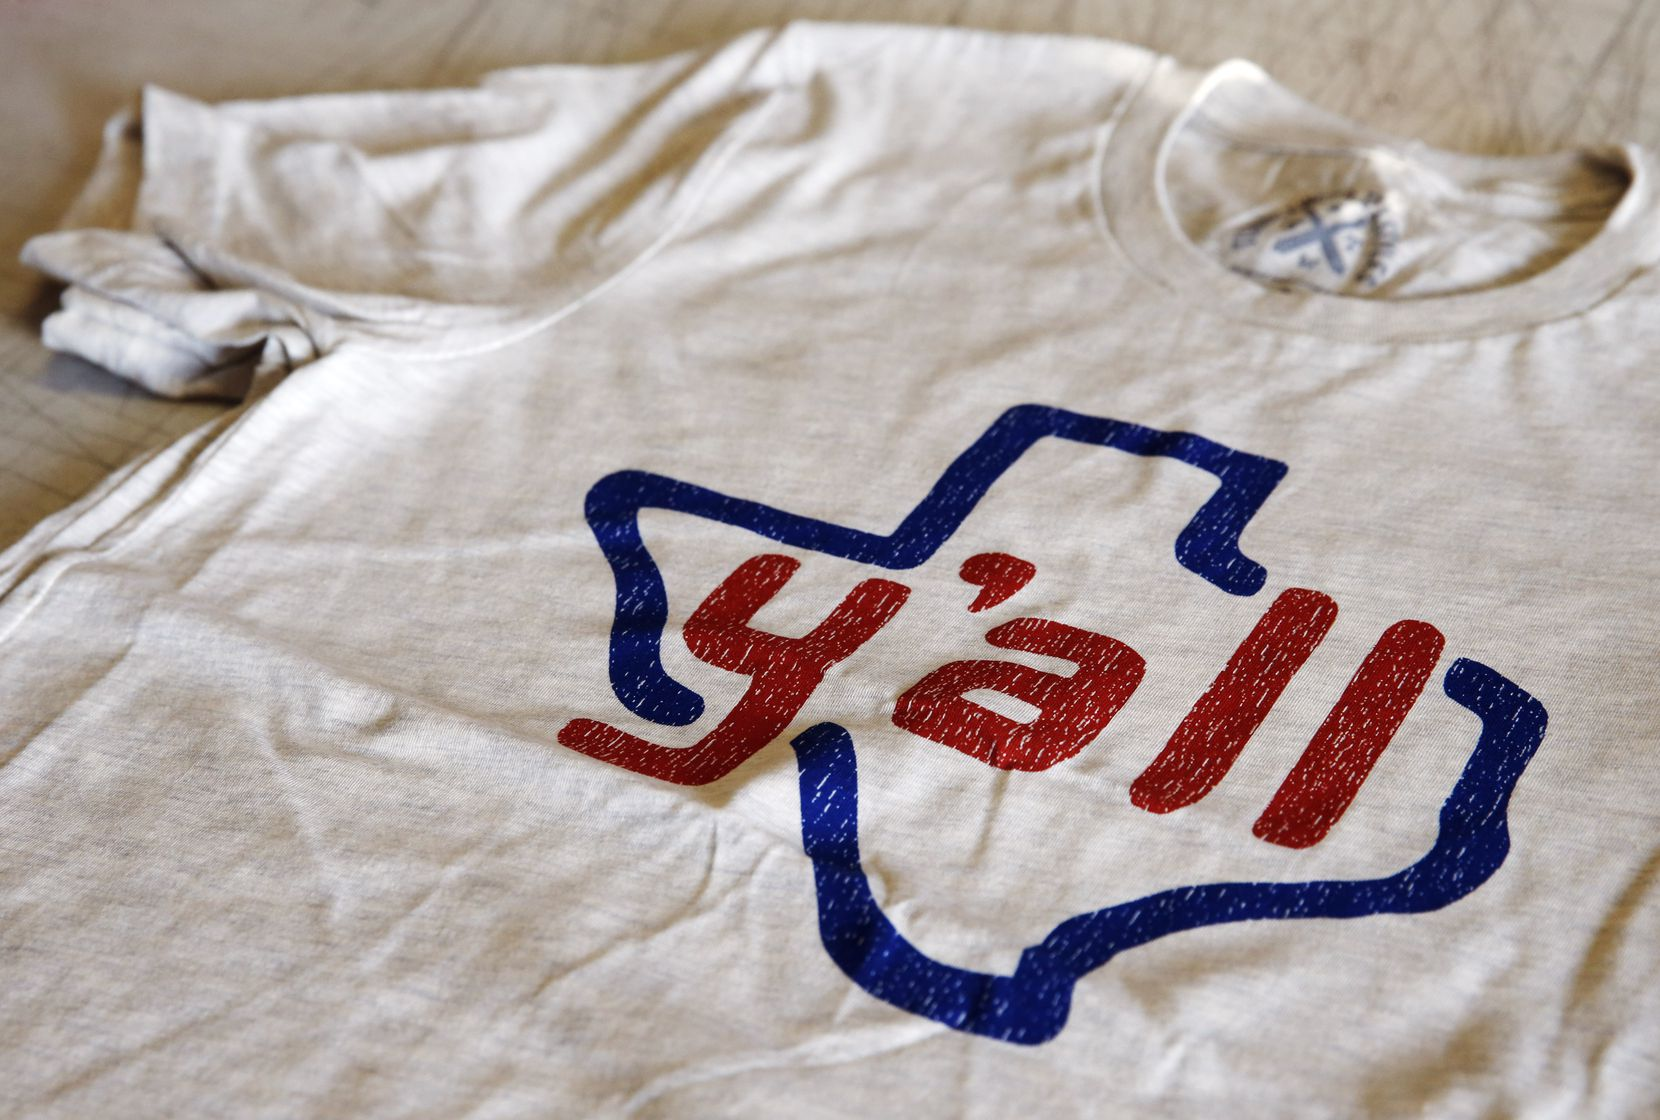 The company's T-shirt designs capture Texans' pride in their state.